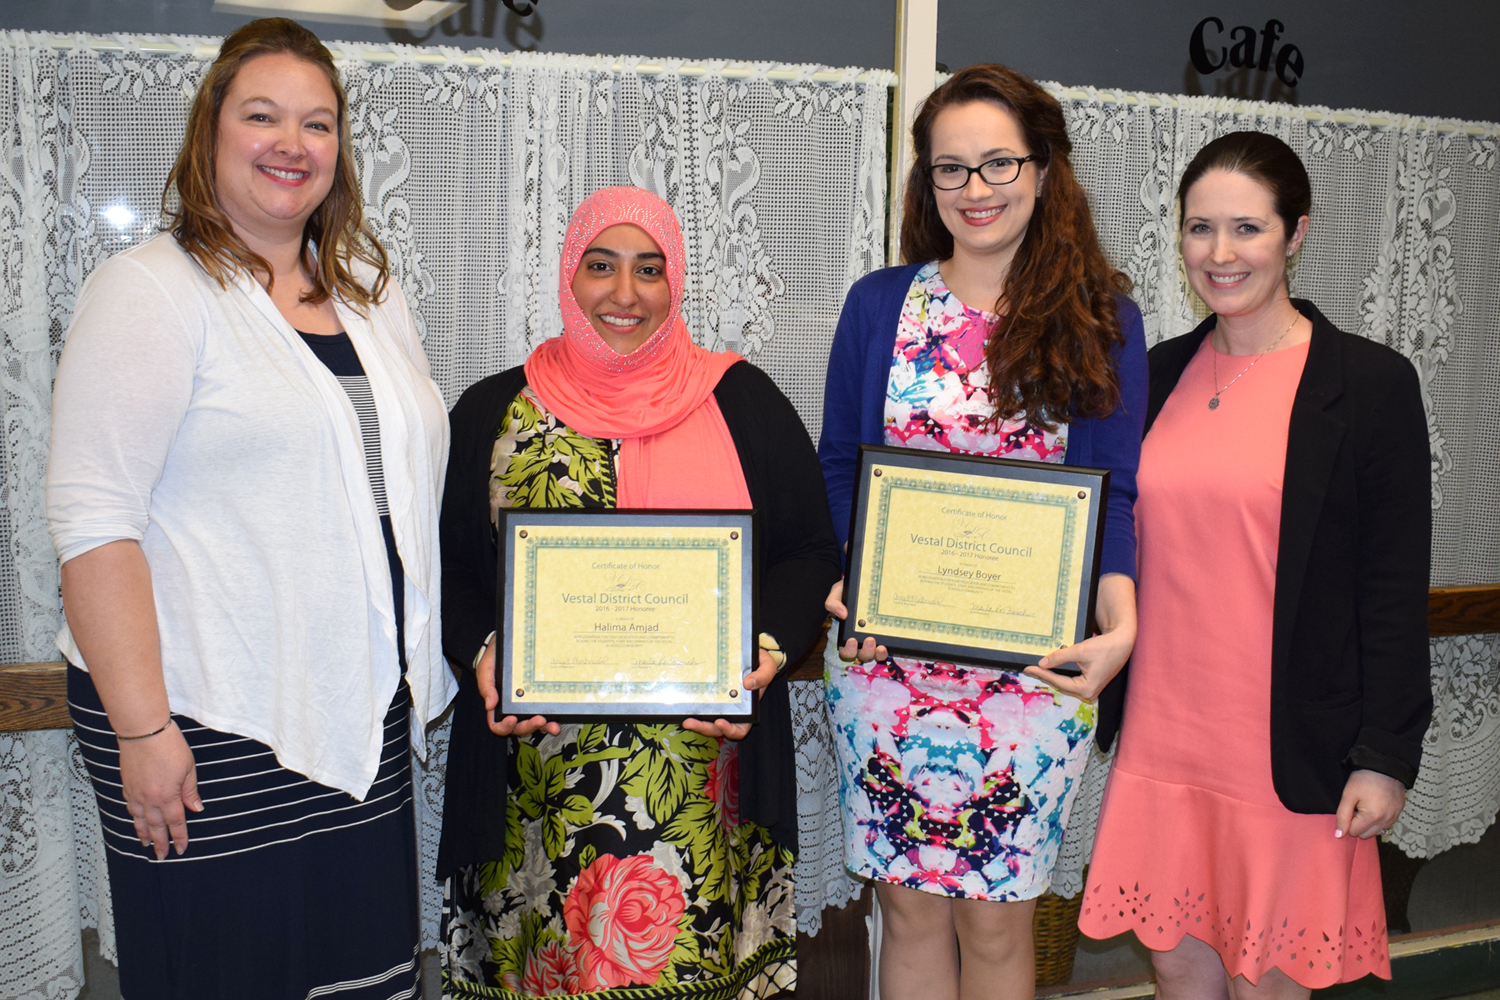 African Road P T A  Co-President Marla French with Honorees Halima Amjad and Lyndsey Boyer, and Afri